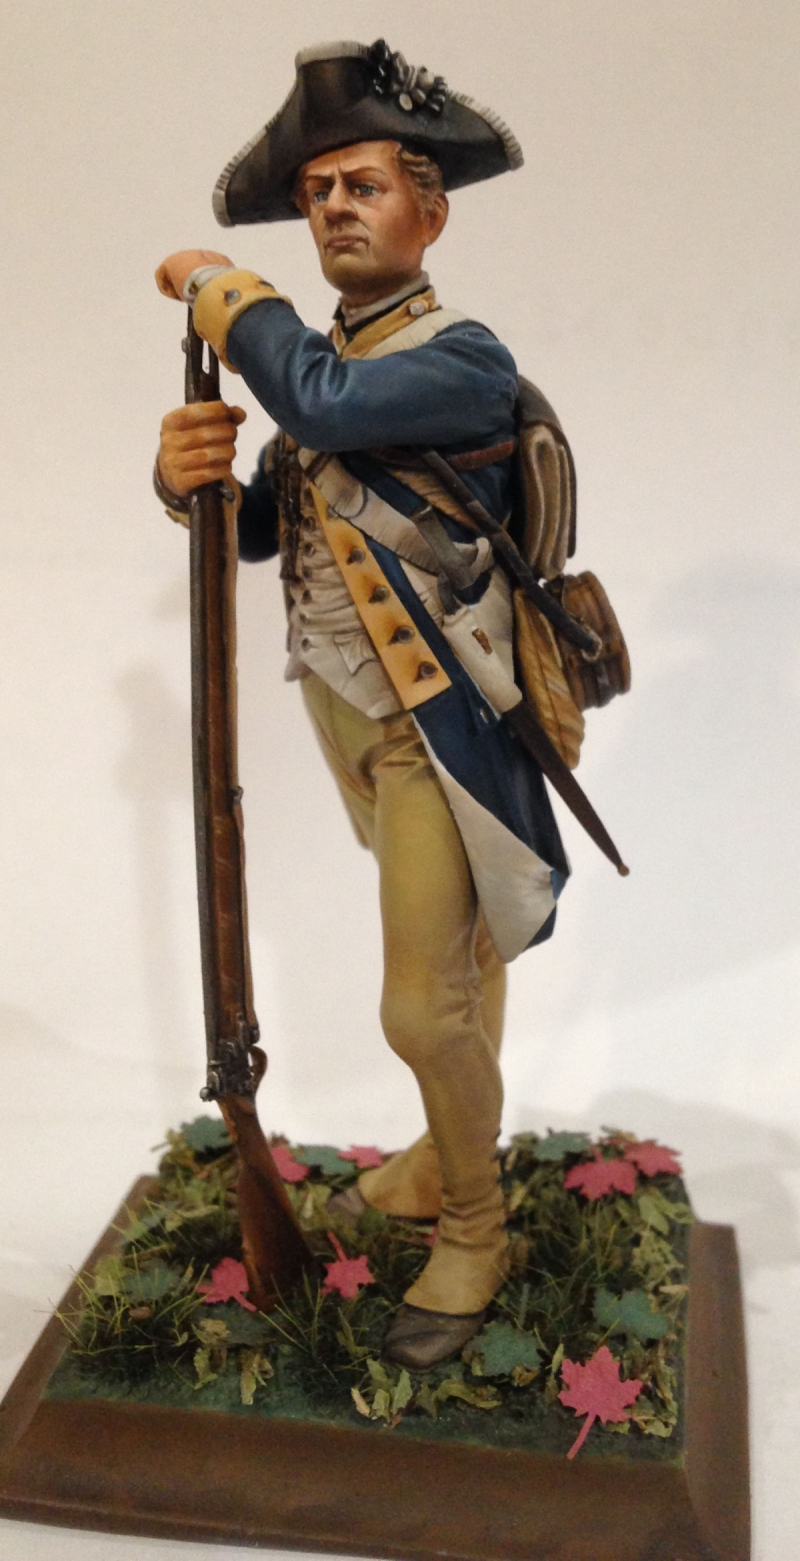 Private, 1st New York Regiment of Continental Line